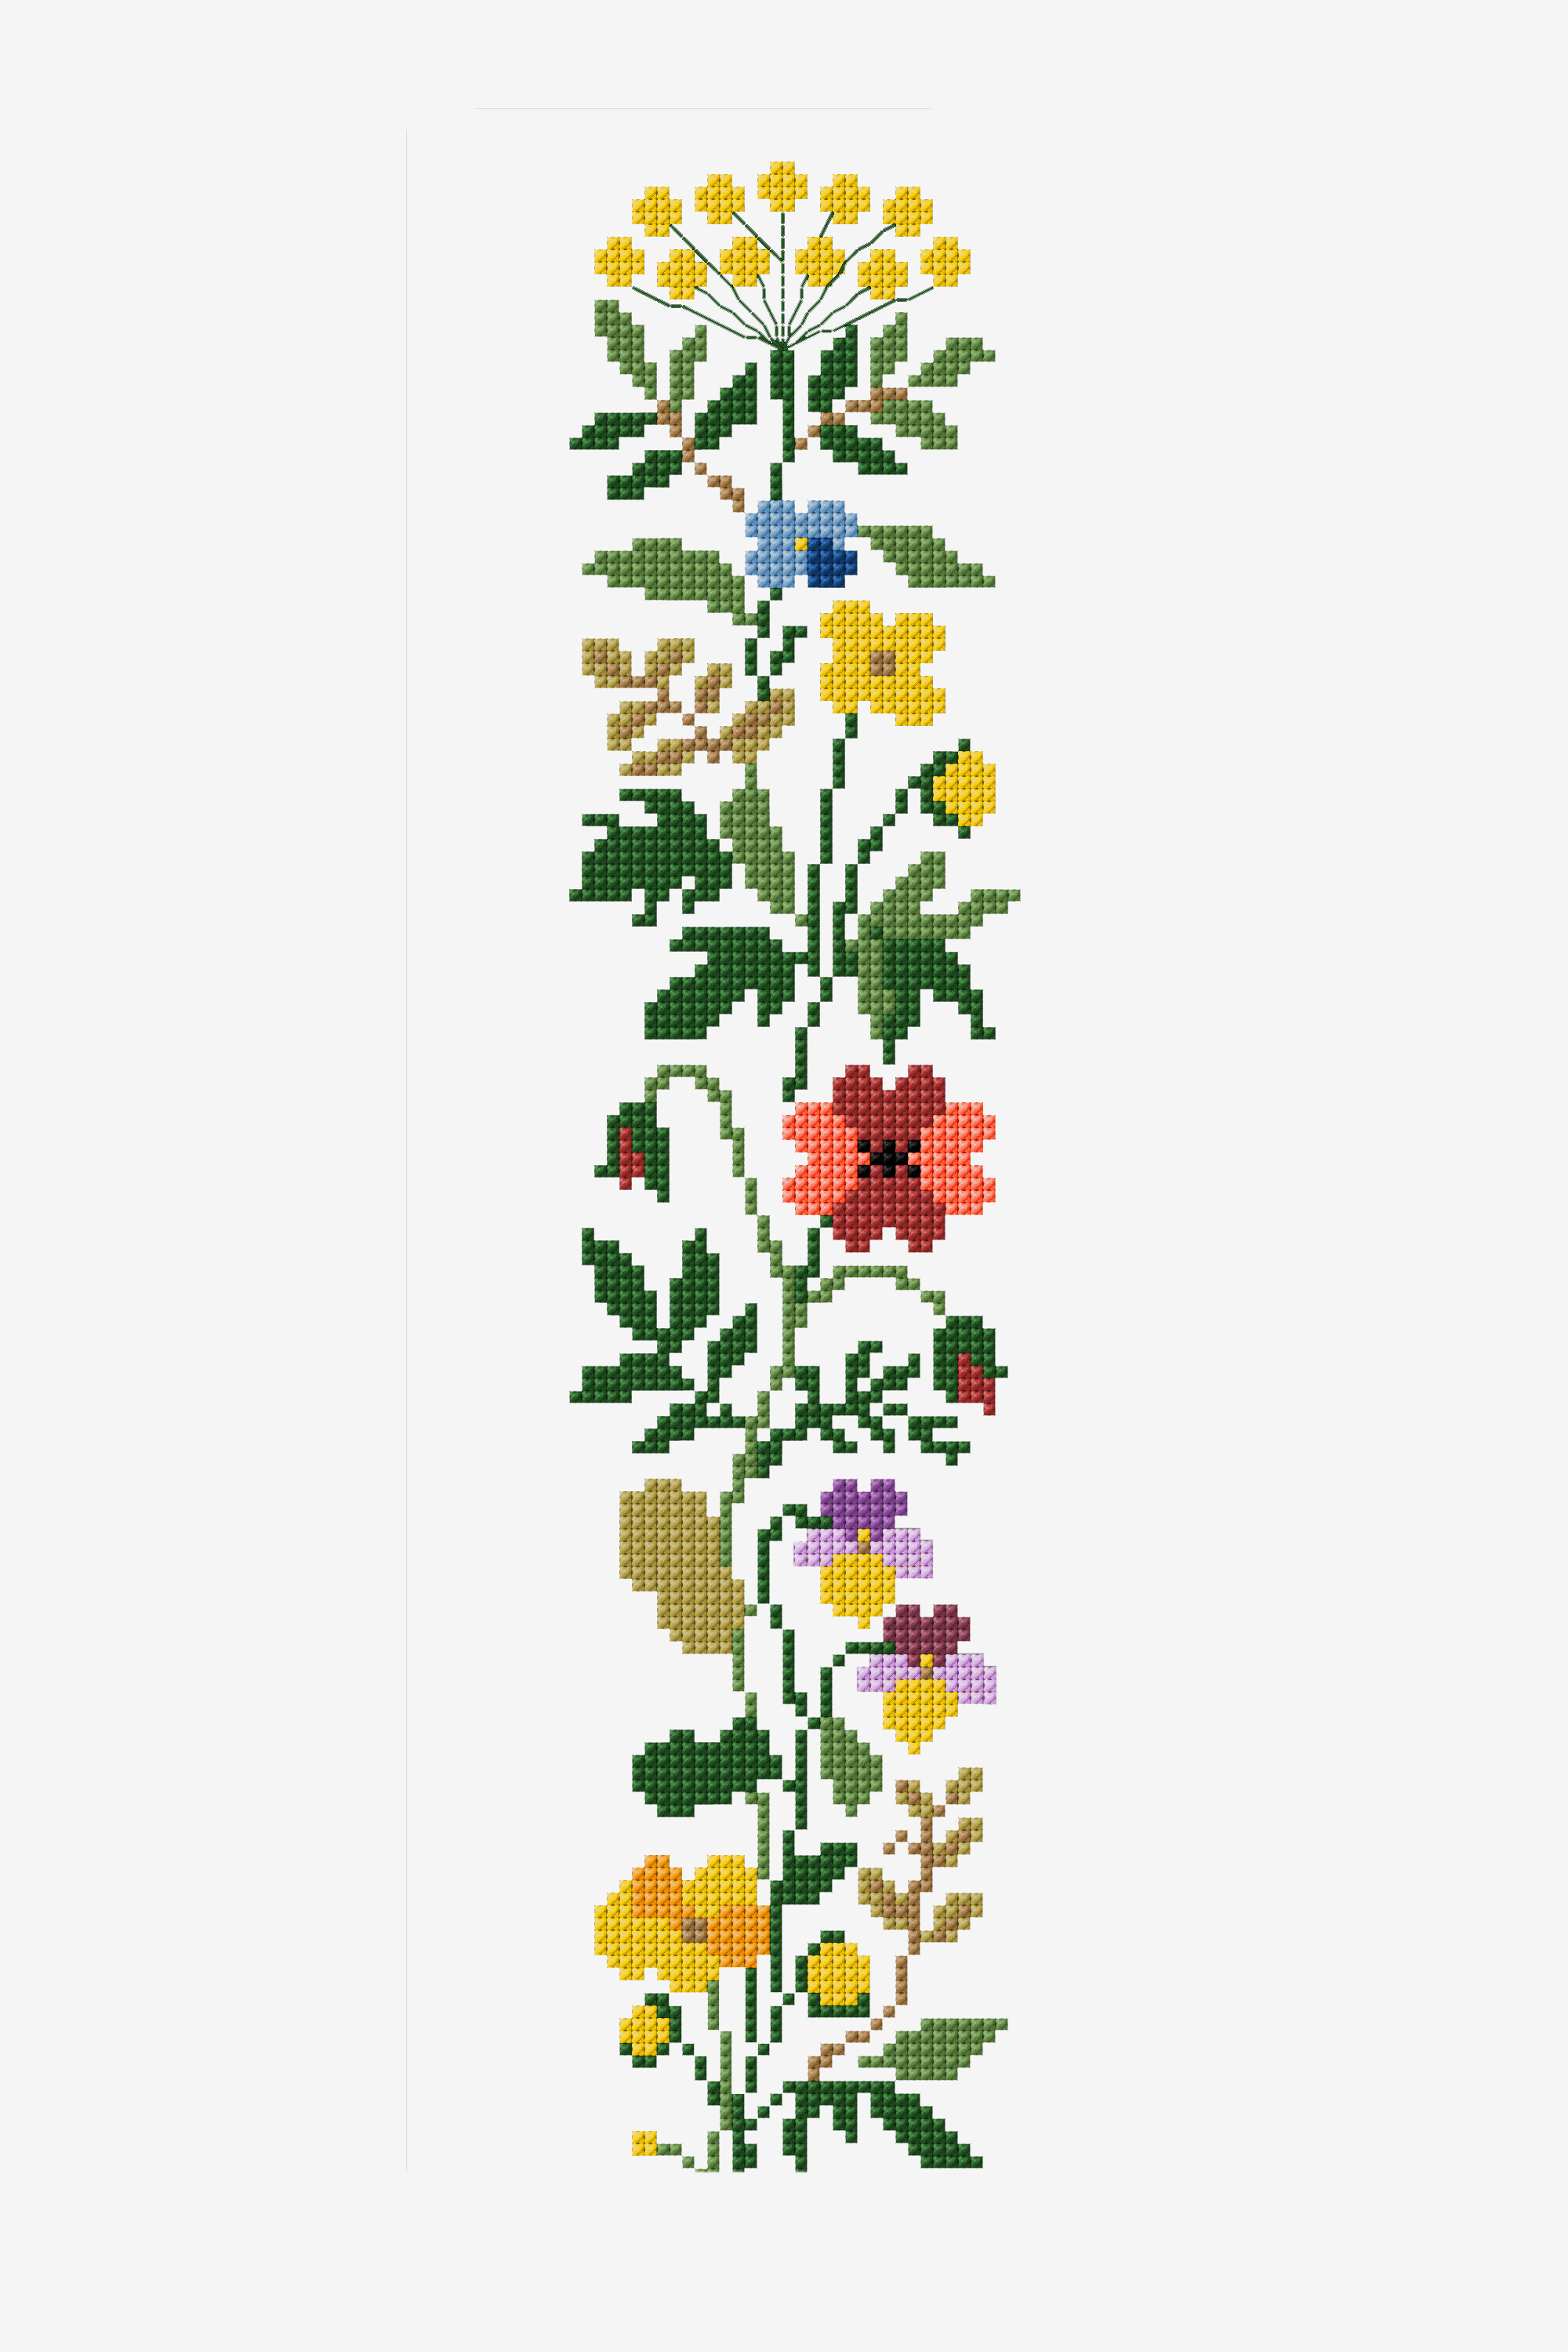 Free embroidery designs and cross stitch patterns dmc english country garden pattern bankloansurffo Images